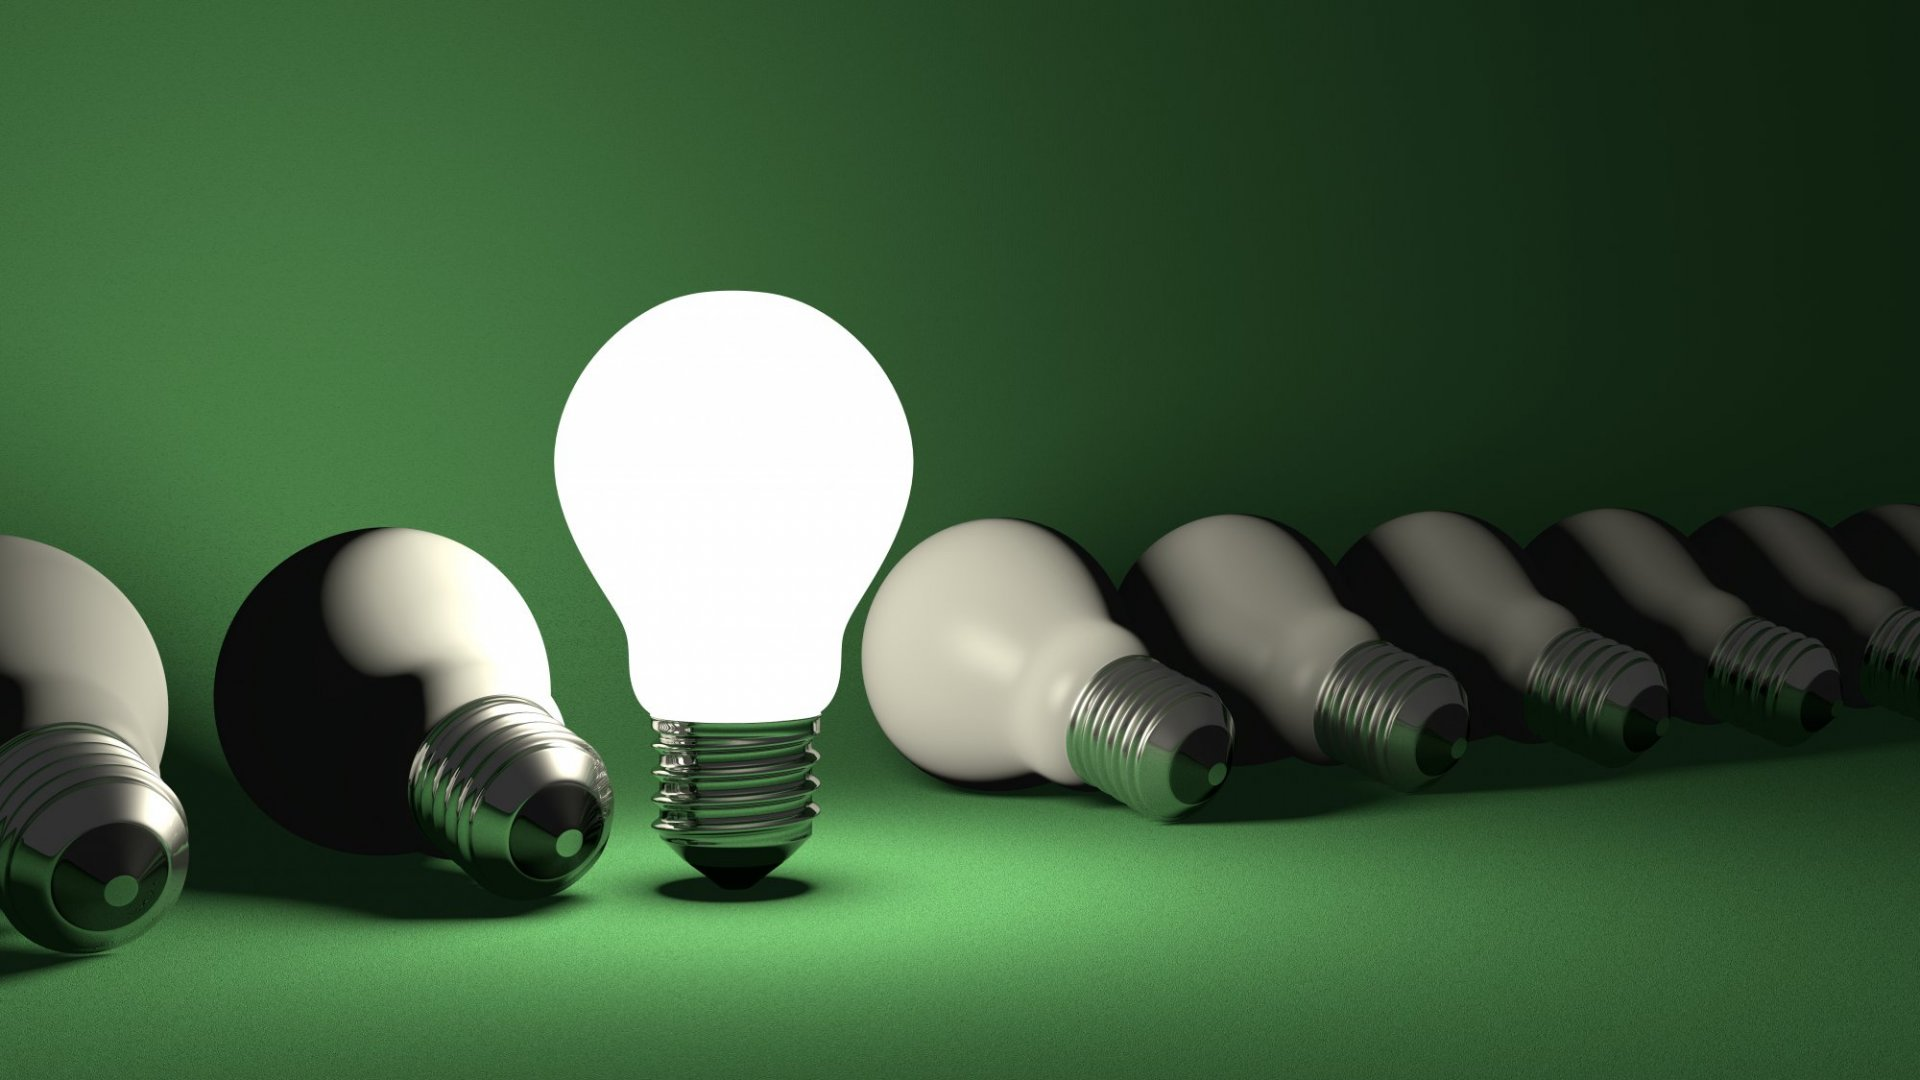 Think ideas are hard to come by? Try licensing those ideas.